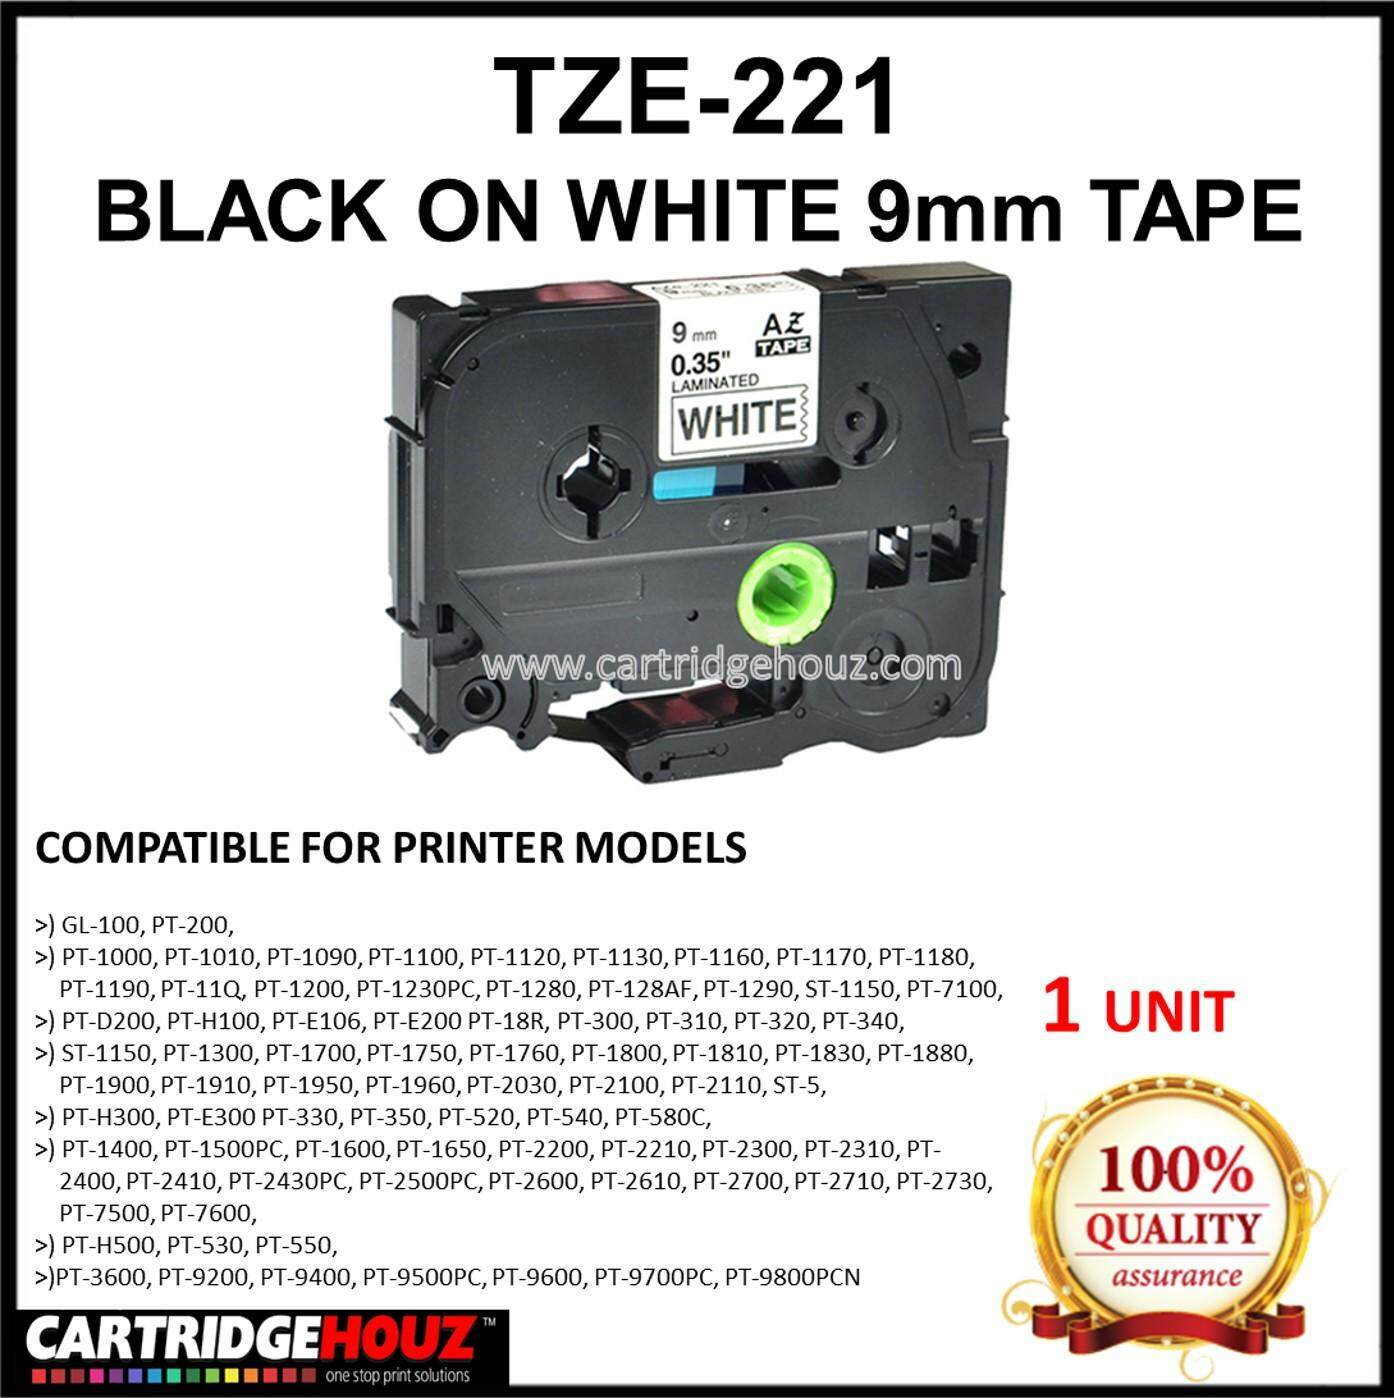 Compatible Brother P-Touch Tze-221 / Tze221 Black On White 9mmx8m Tape By Cartridge Houz.